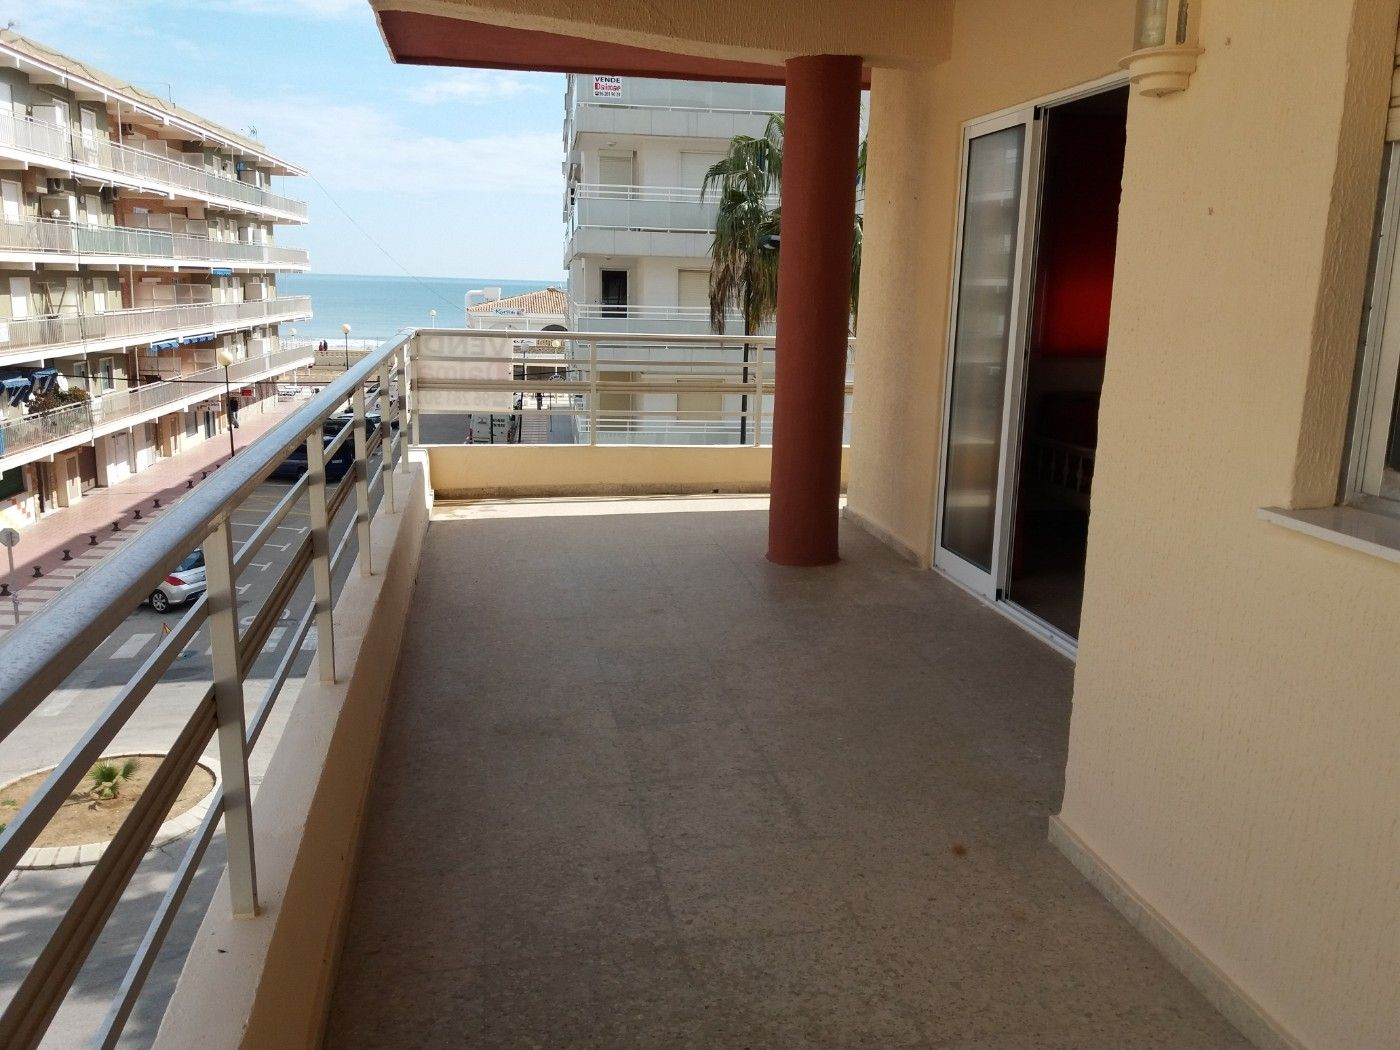 Appartement à Calle pobla del duc, 1. Playa de daimuz vistas al mar